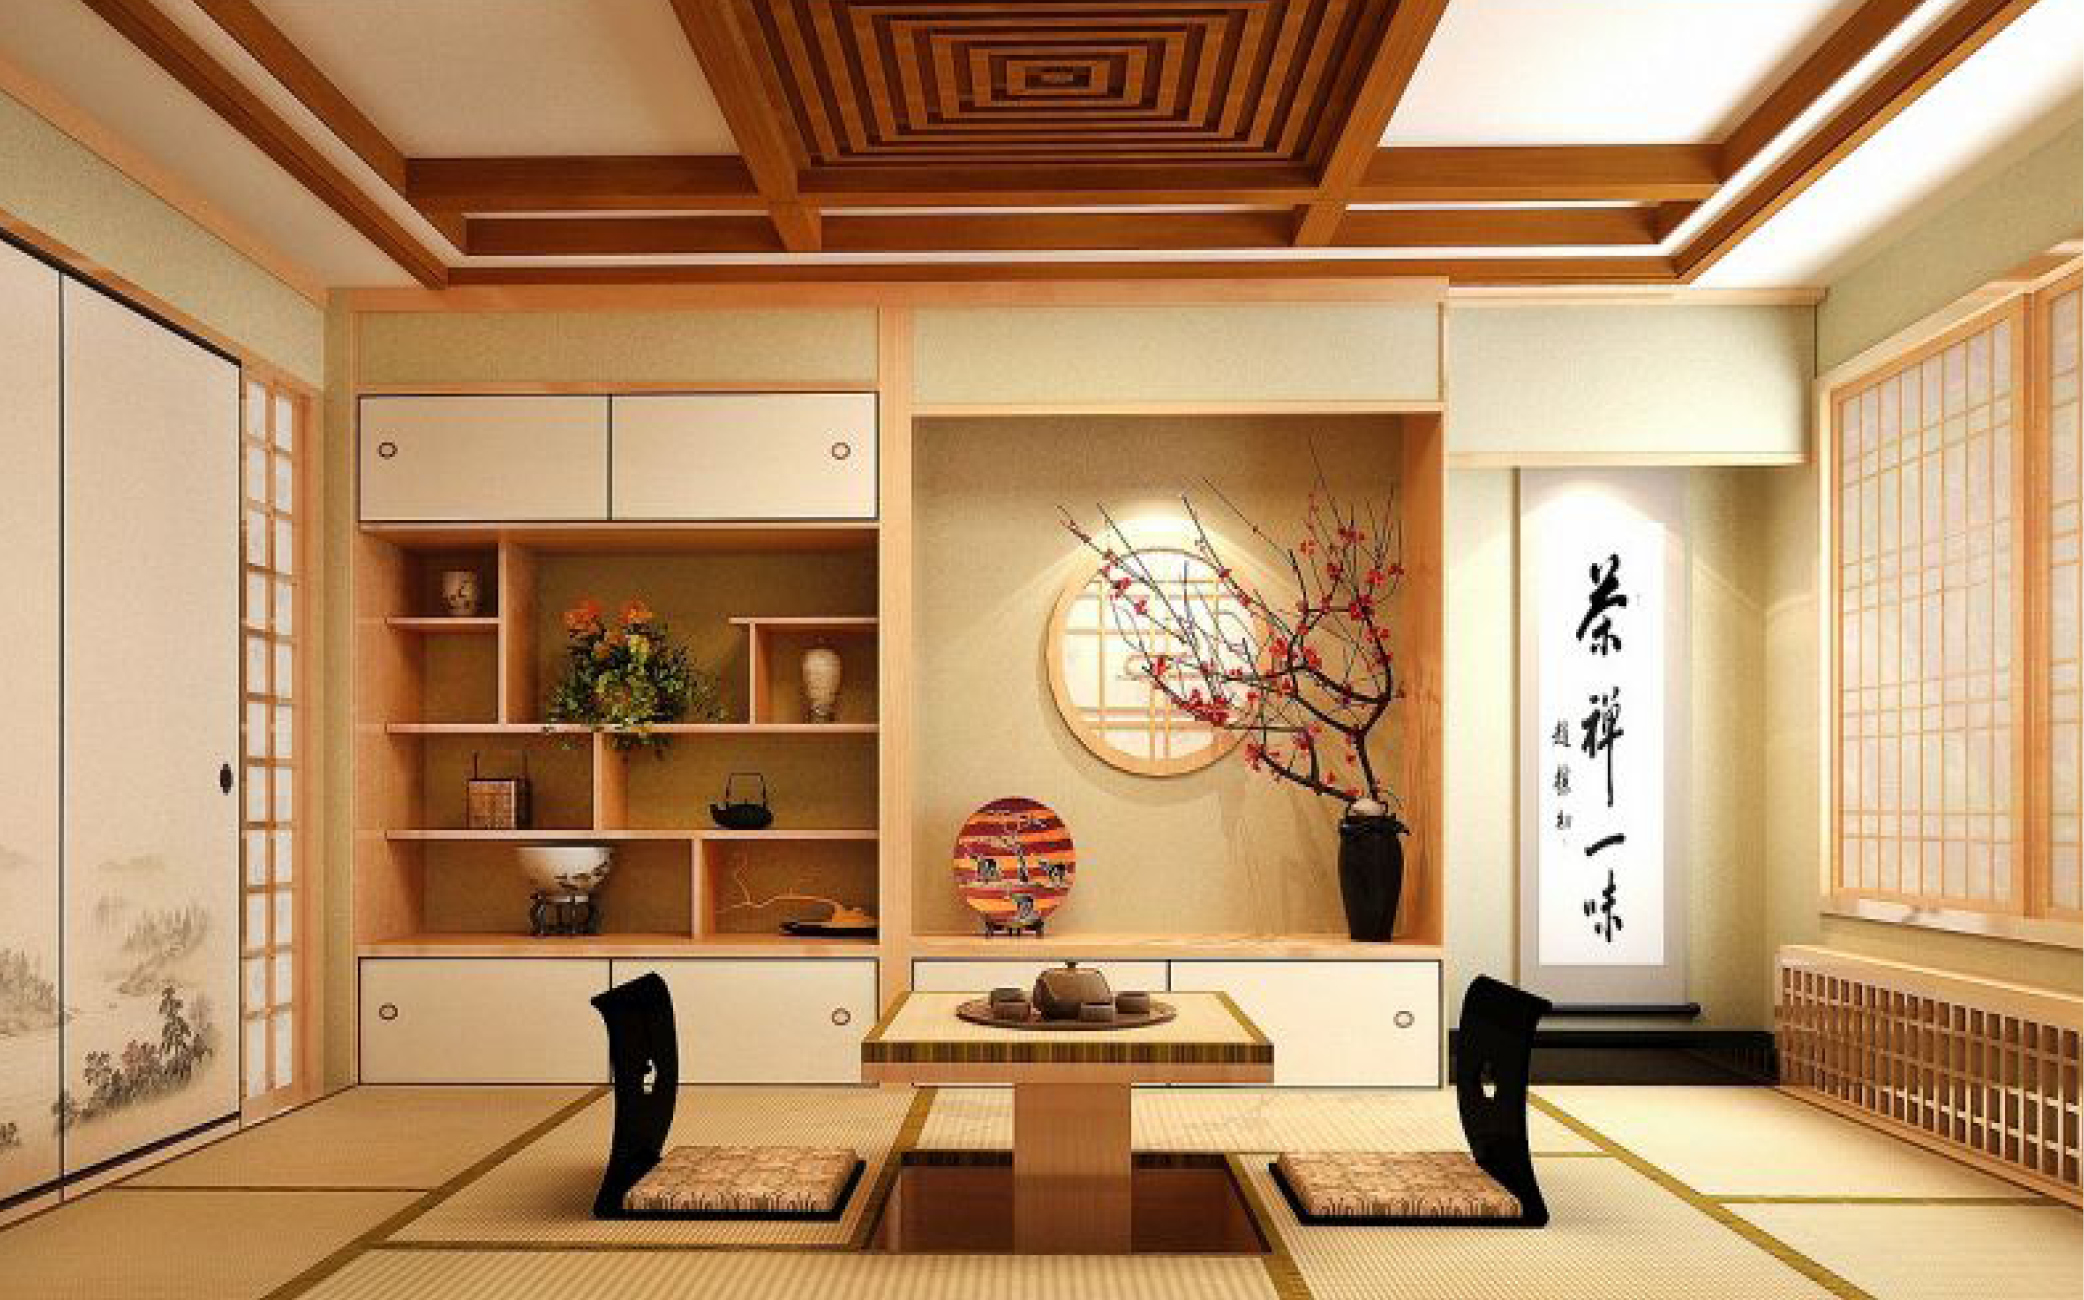 Japanese style: the stylistic expression of a civilization